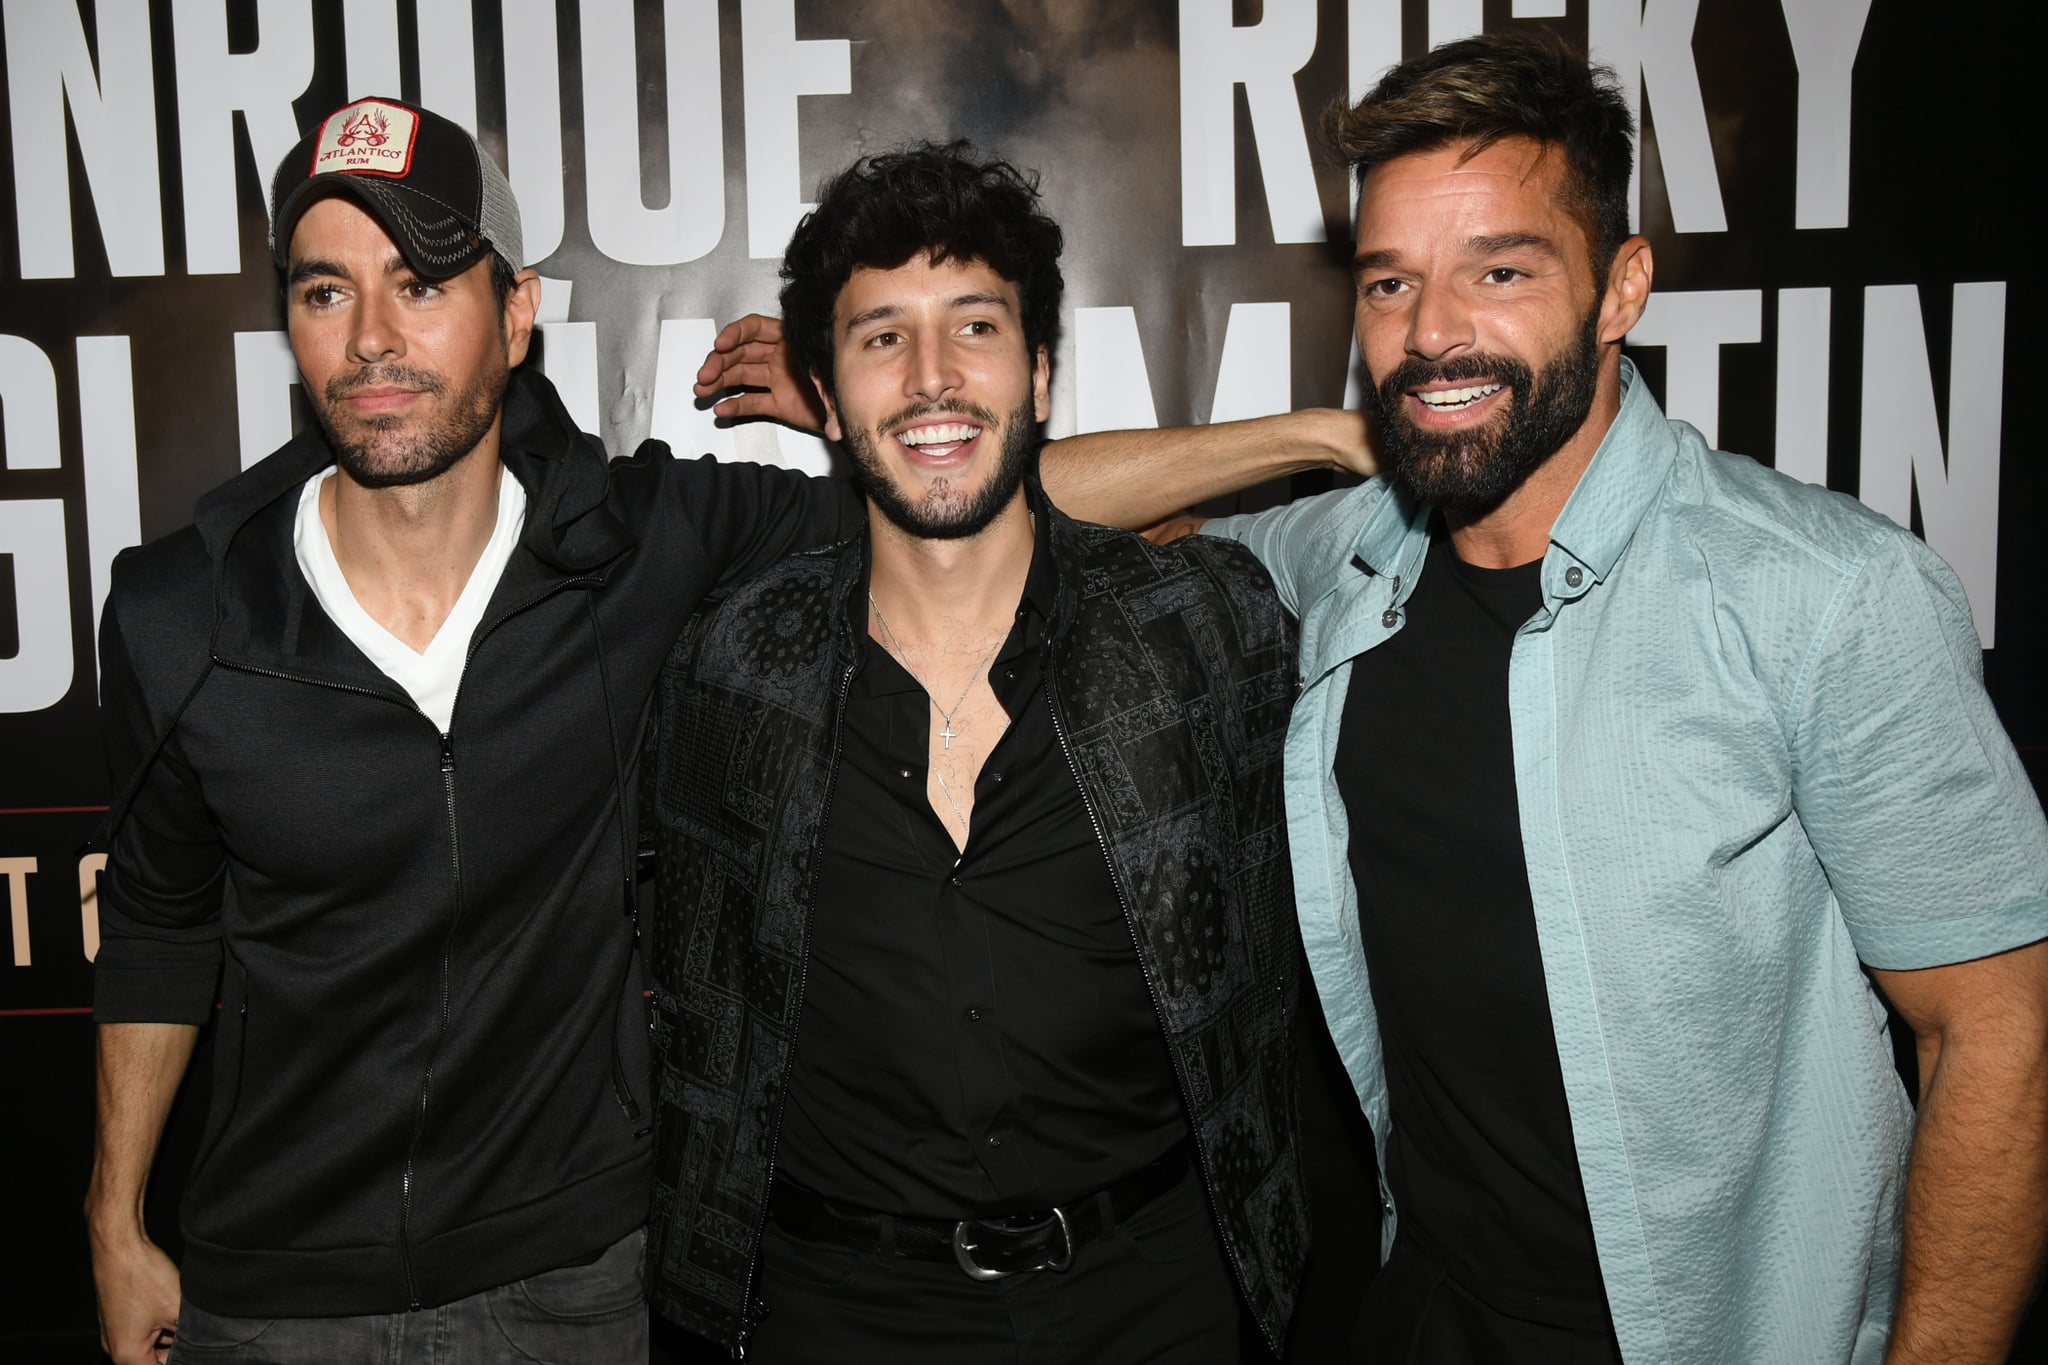 WEST HOLLYWOOD, CALIFORNIA - MARCH 04: (L-R) Enrique Iglesias, Sebastián Yatra and Ricky Martin hold a press conference at Penthouse at the London West Hollywood on March 4, 2020 in West Hollywood, California. (Photo by Kevin Winter/Getty Images)